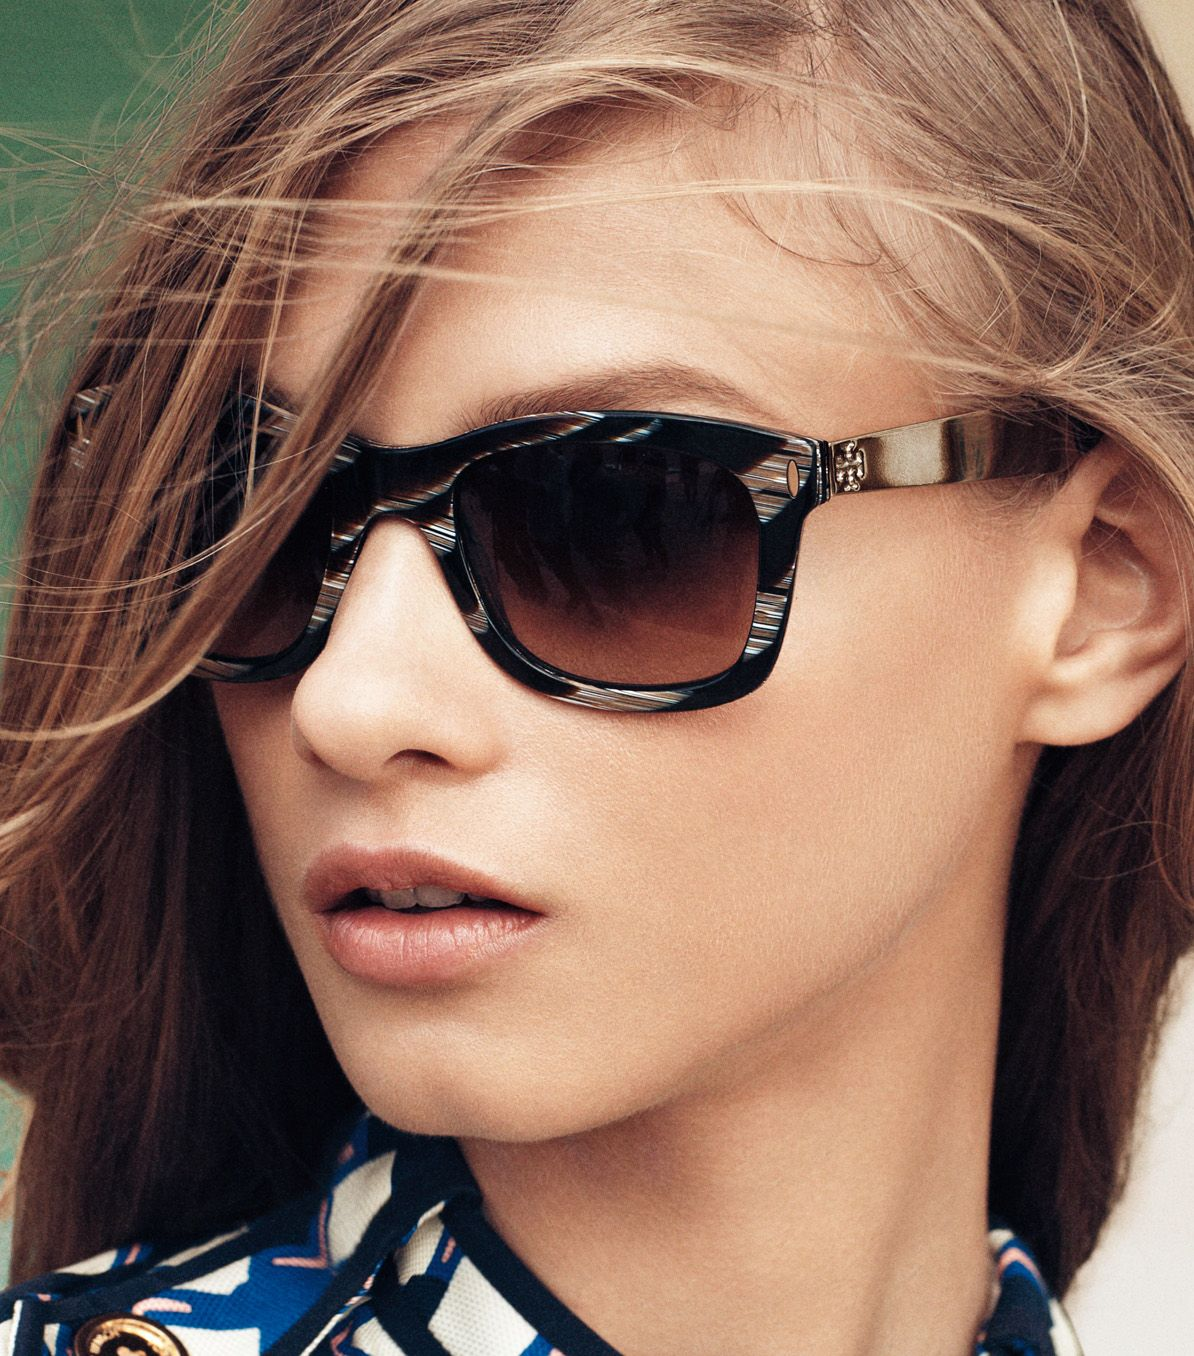 Lyst Tory Burch Vintage Square Sunglasses With Metal